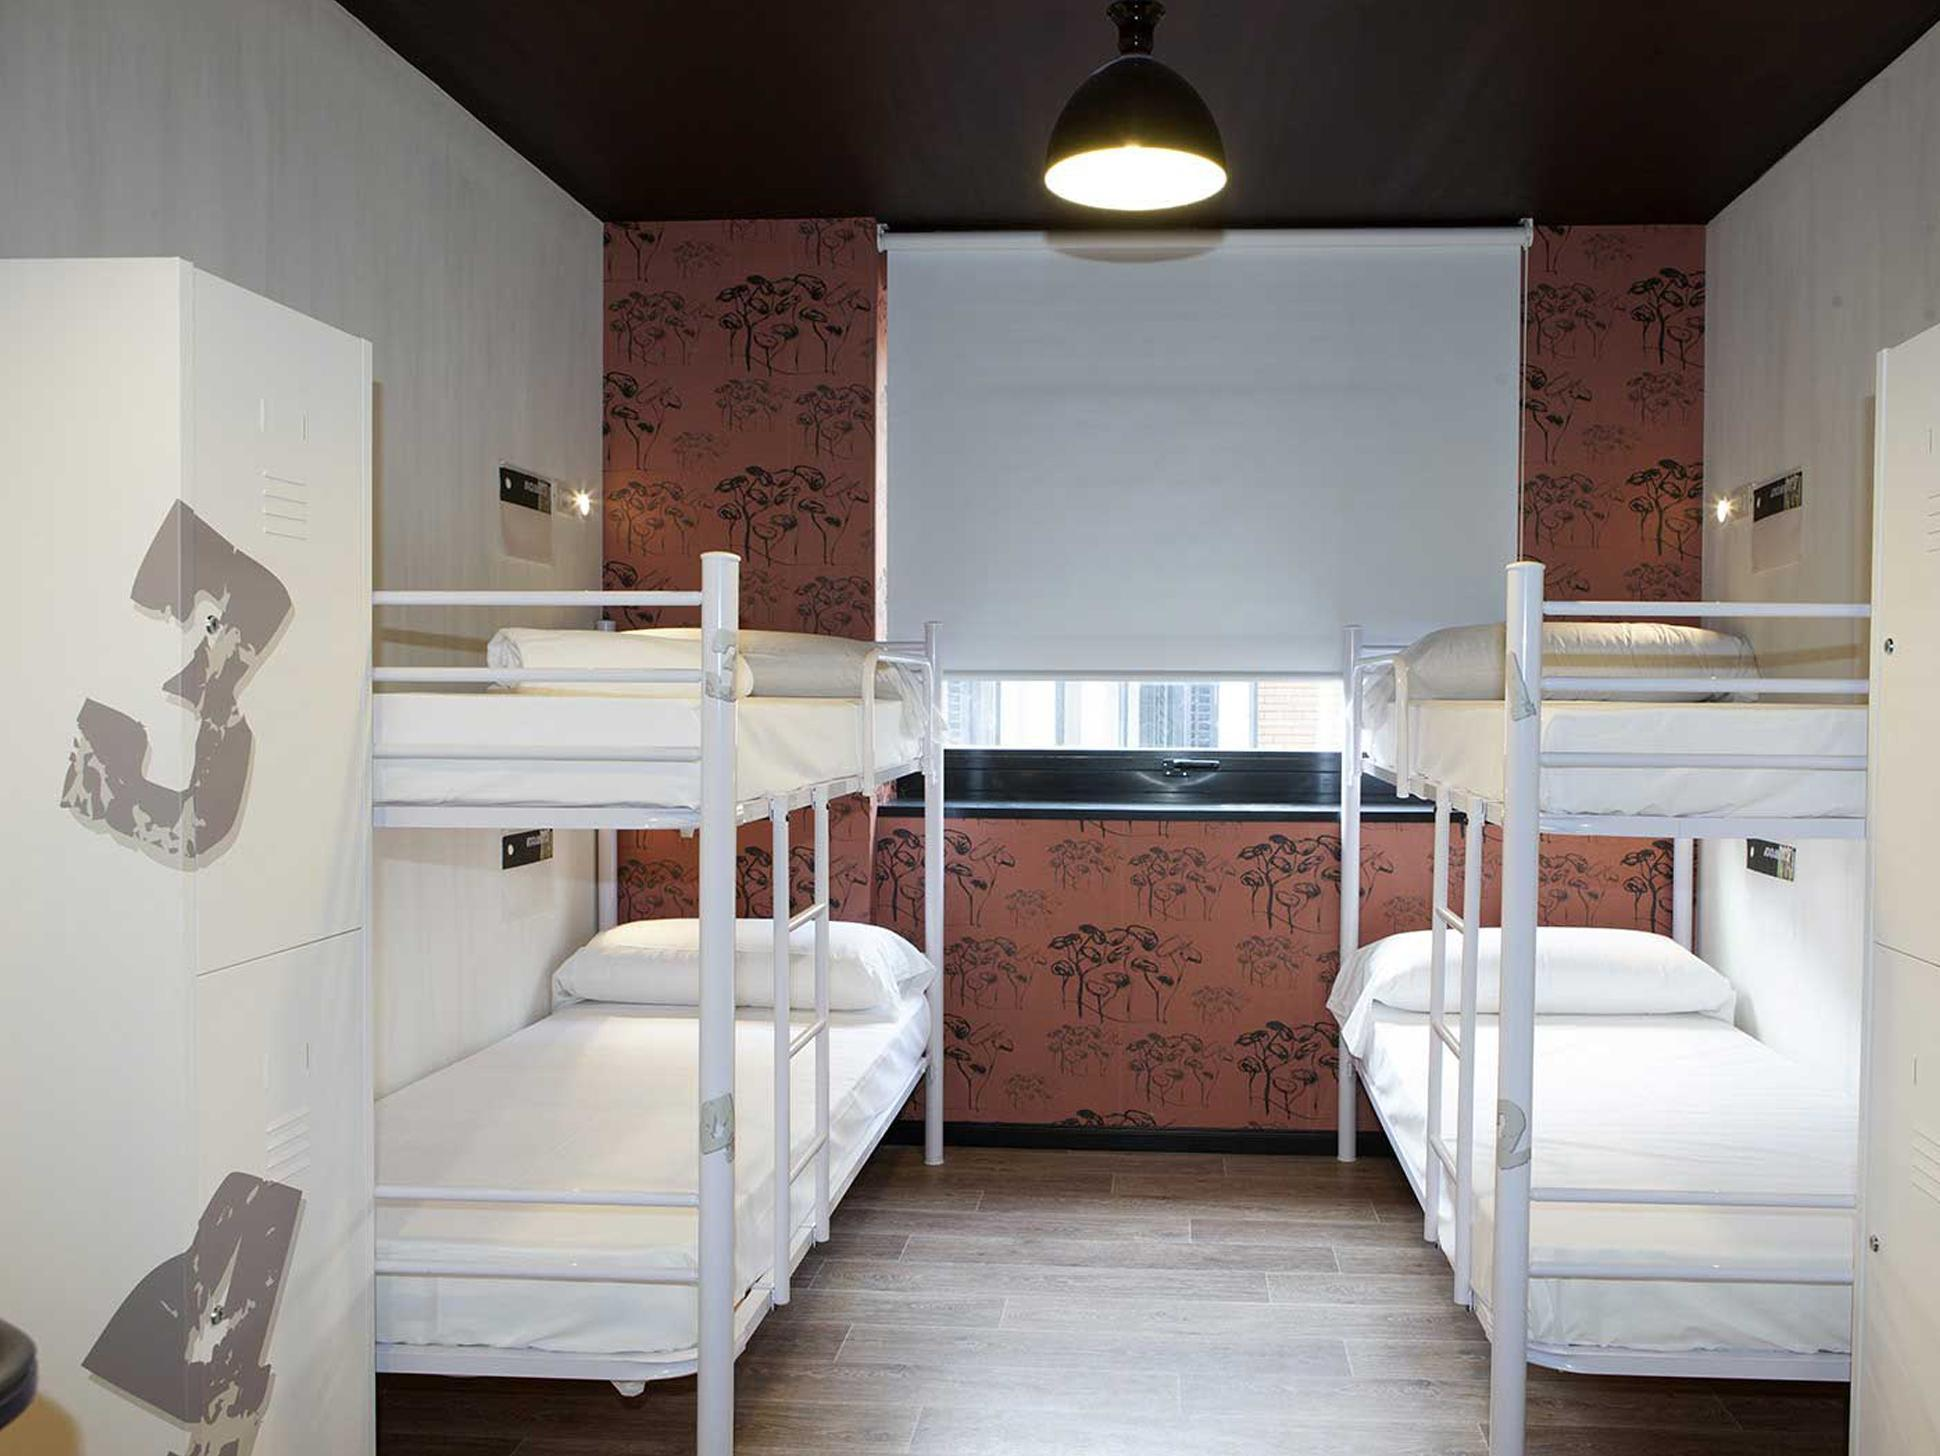 1 Bed in 6-Bed Dormitory with Private Bathroom